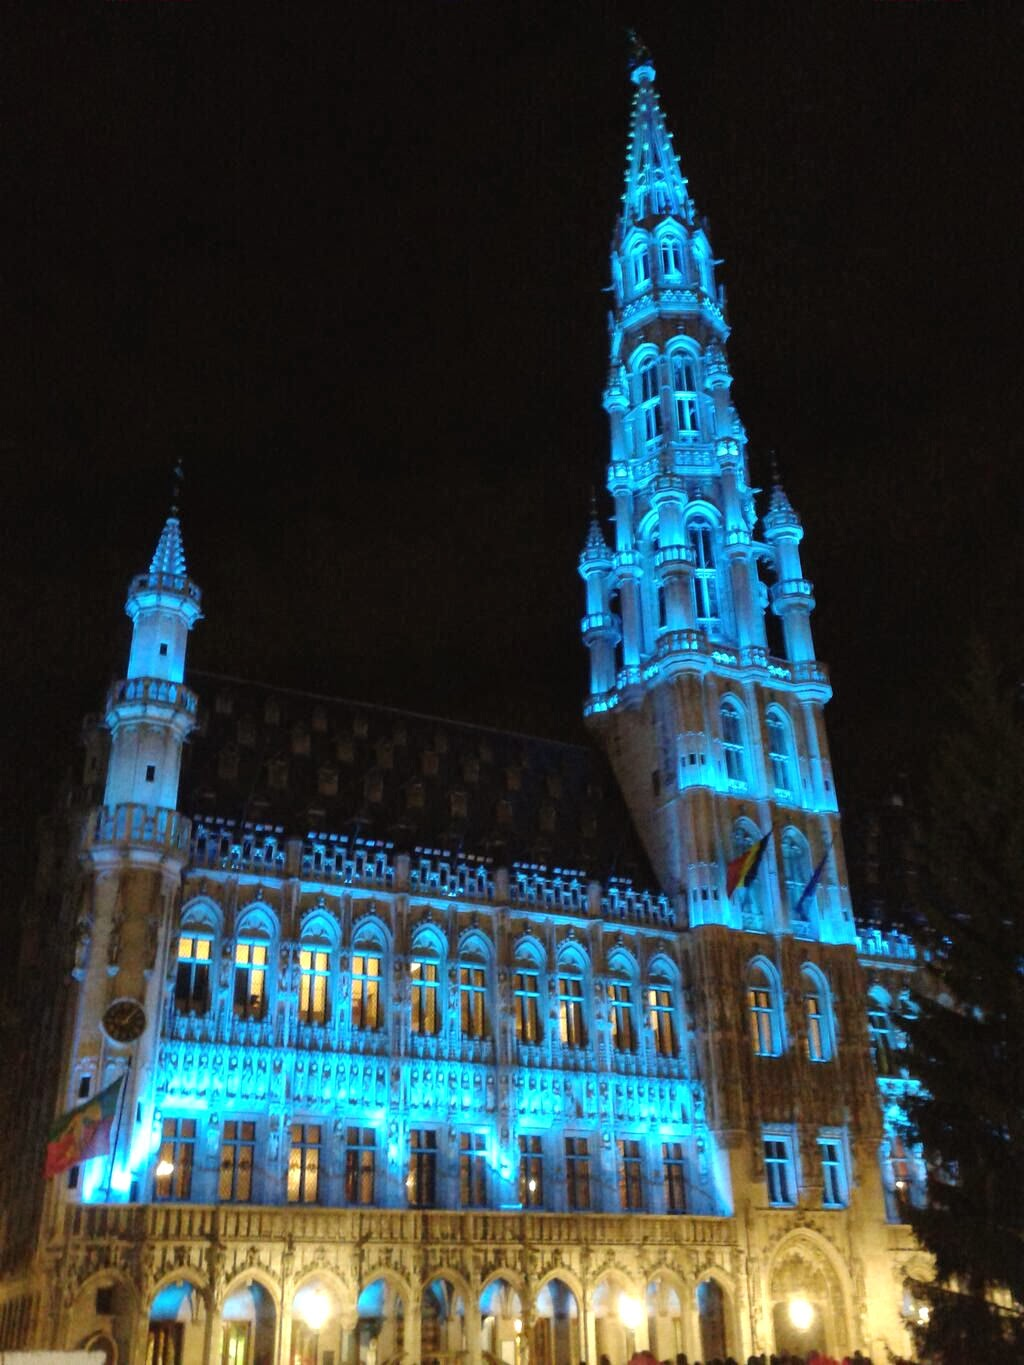 Brussels Town Hall in the city's Grand Place rises 315 feet into the air and is topped off by a 12-foot statue of Saint Michael slaying a demon. Photo: Valy Dumoulin.